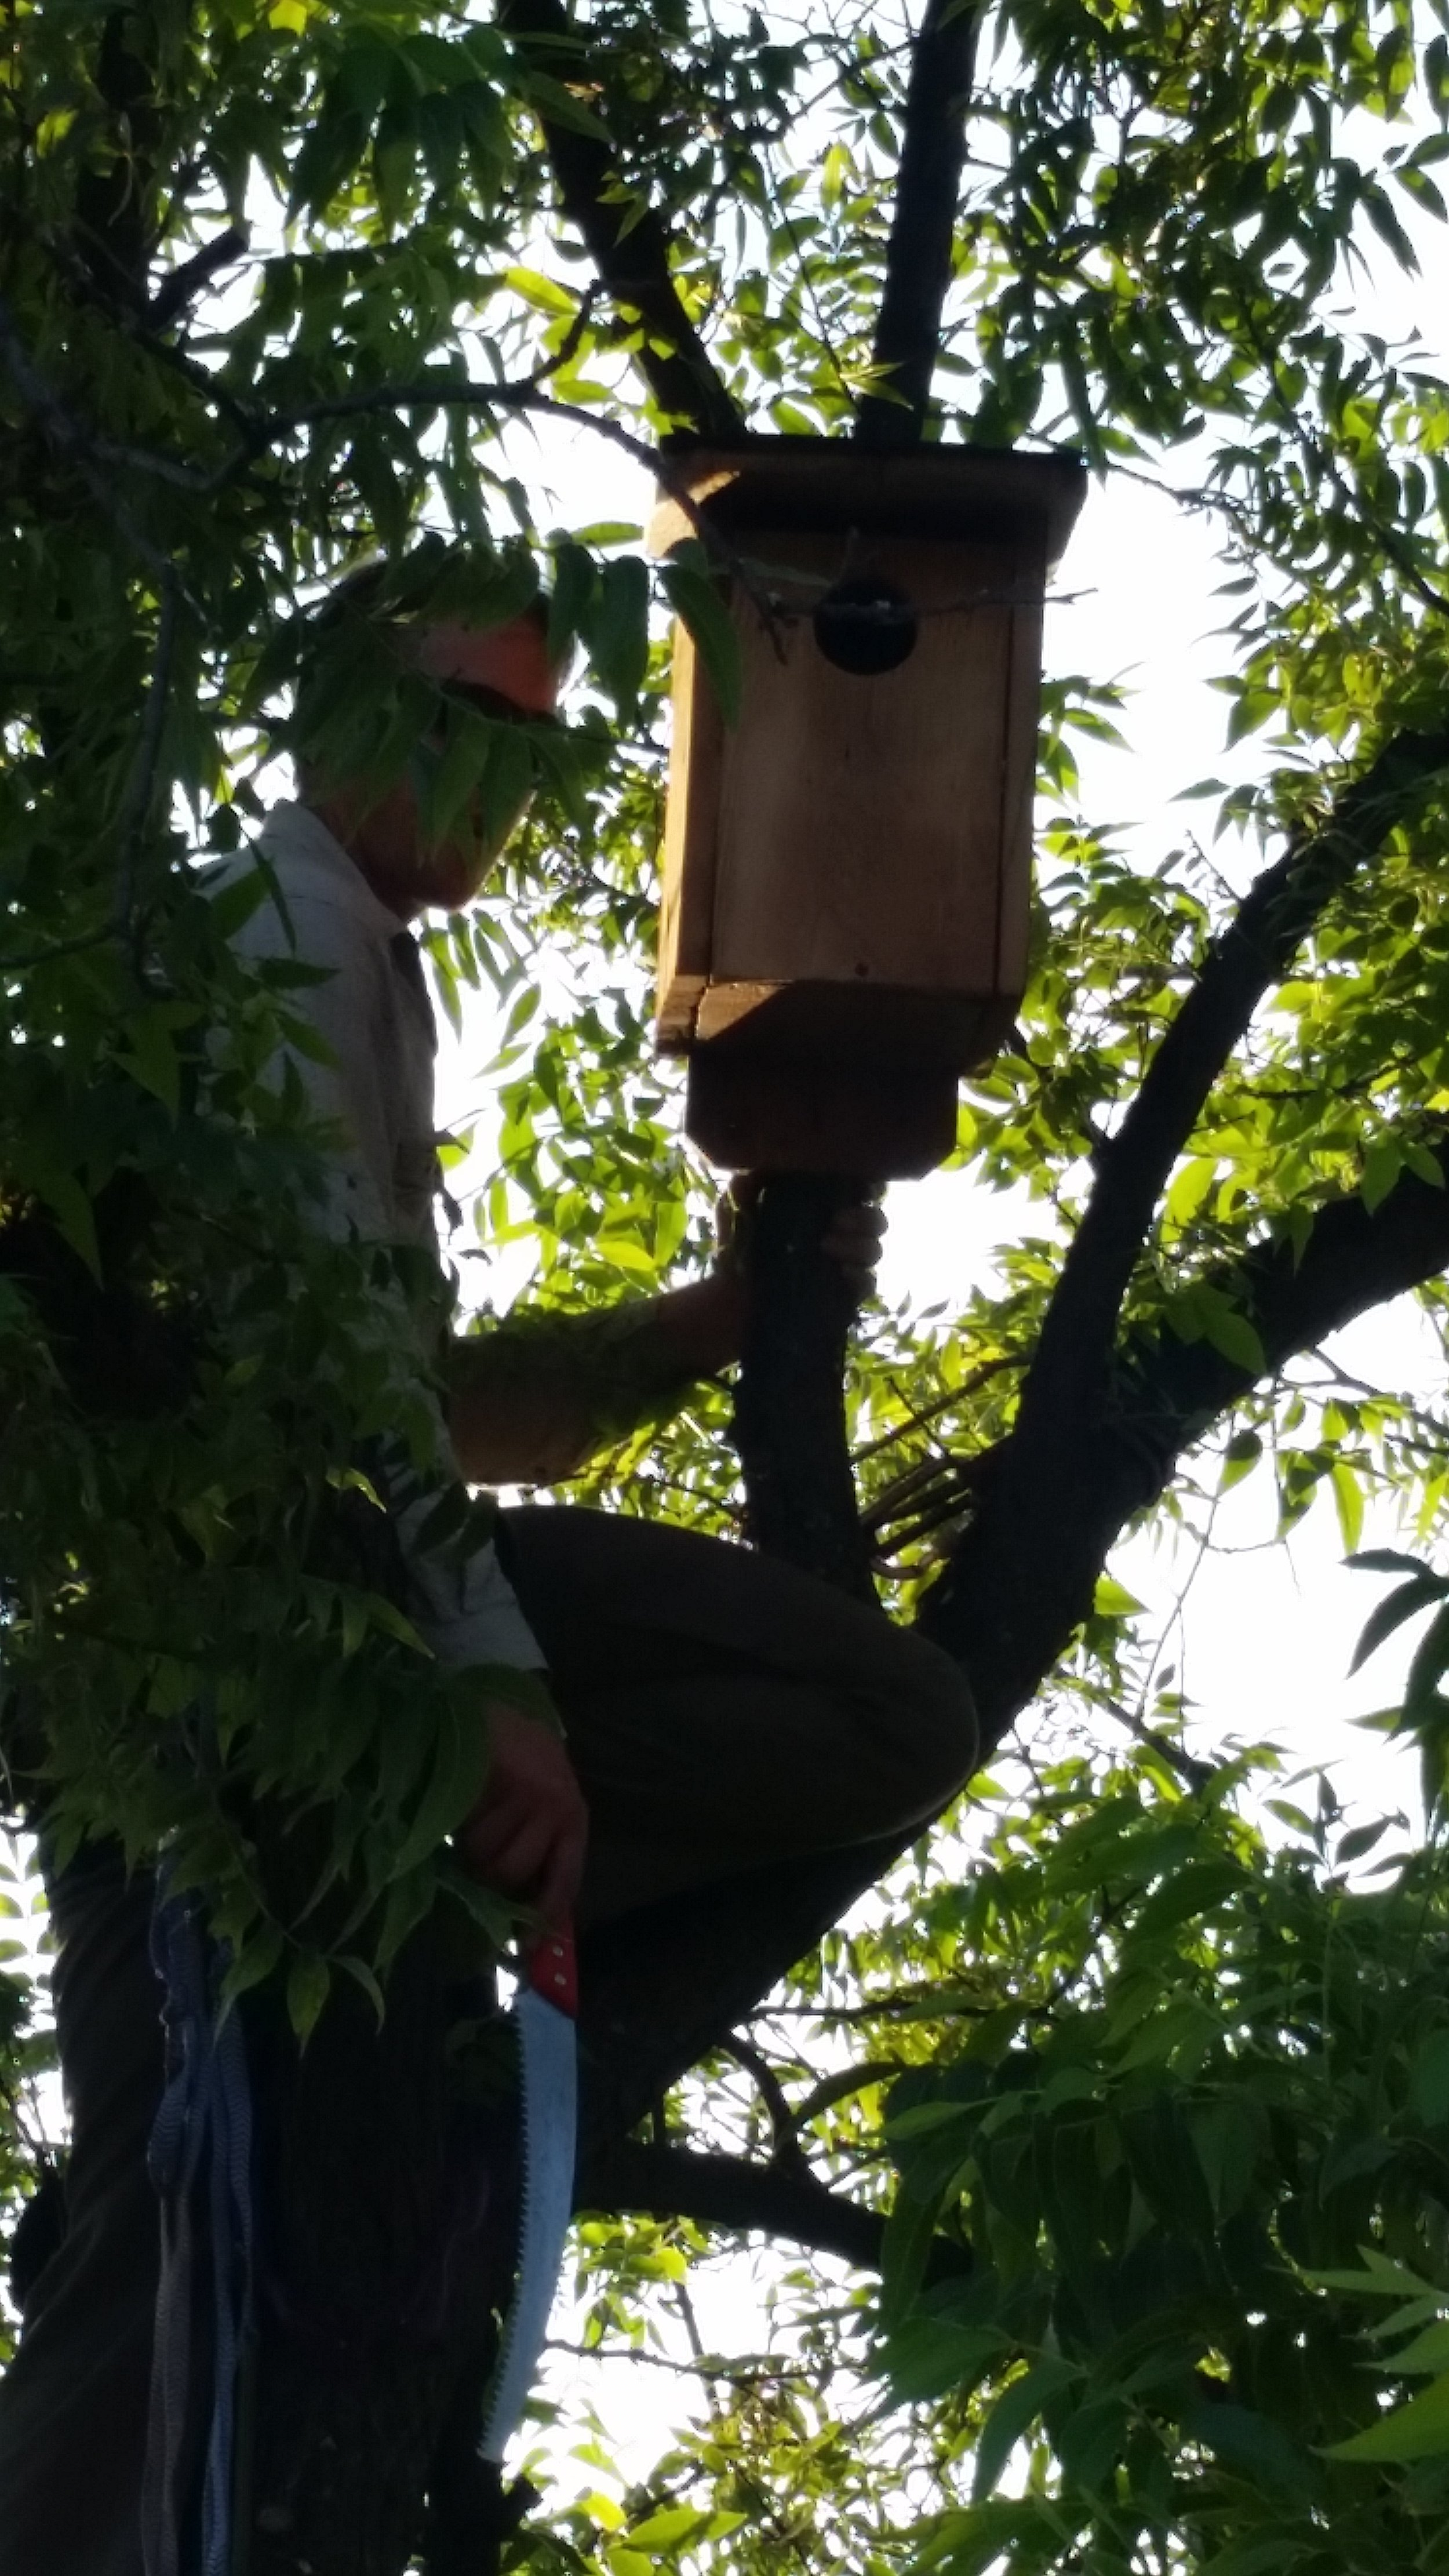 KEVIN McCLOUD from the Ojai Raptor Center installs an American Kestrel ( Falco sparvaerius ) box in the walnut tree near Baba's Path at Meher Mount. (Photo: Lynn Barnes, July 27, 2018)